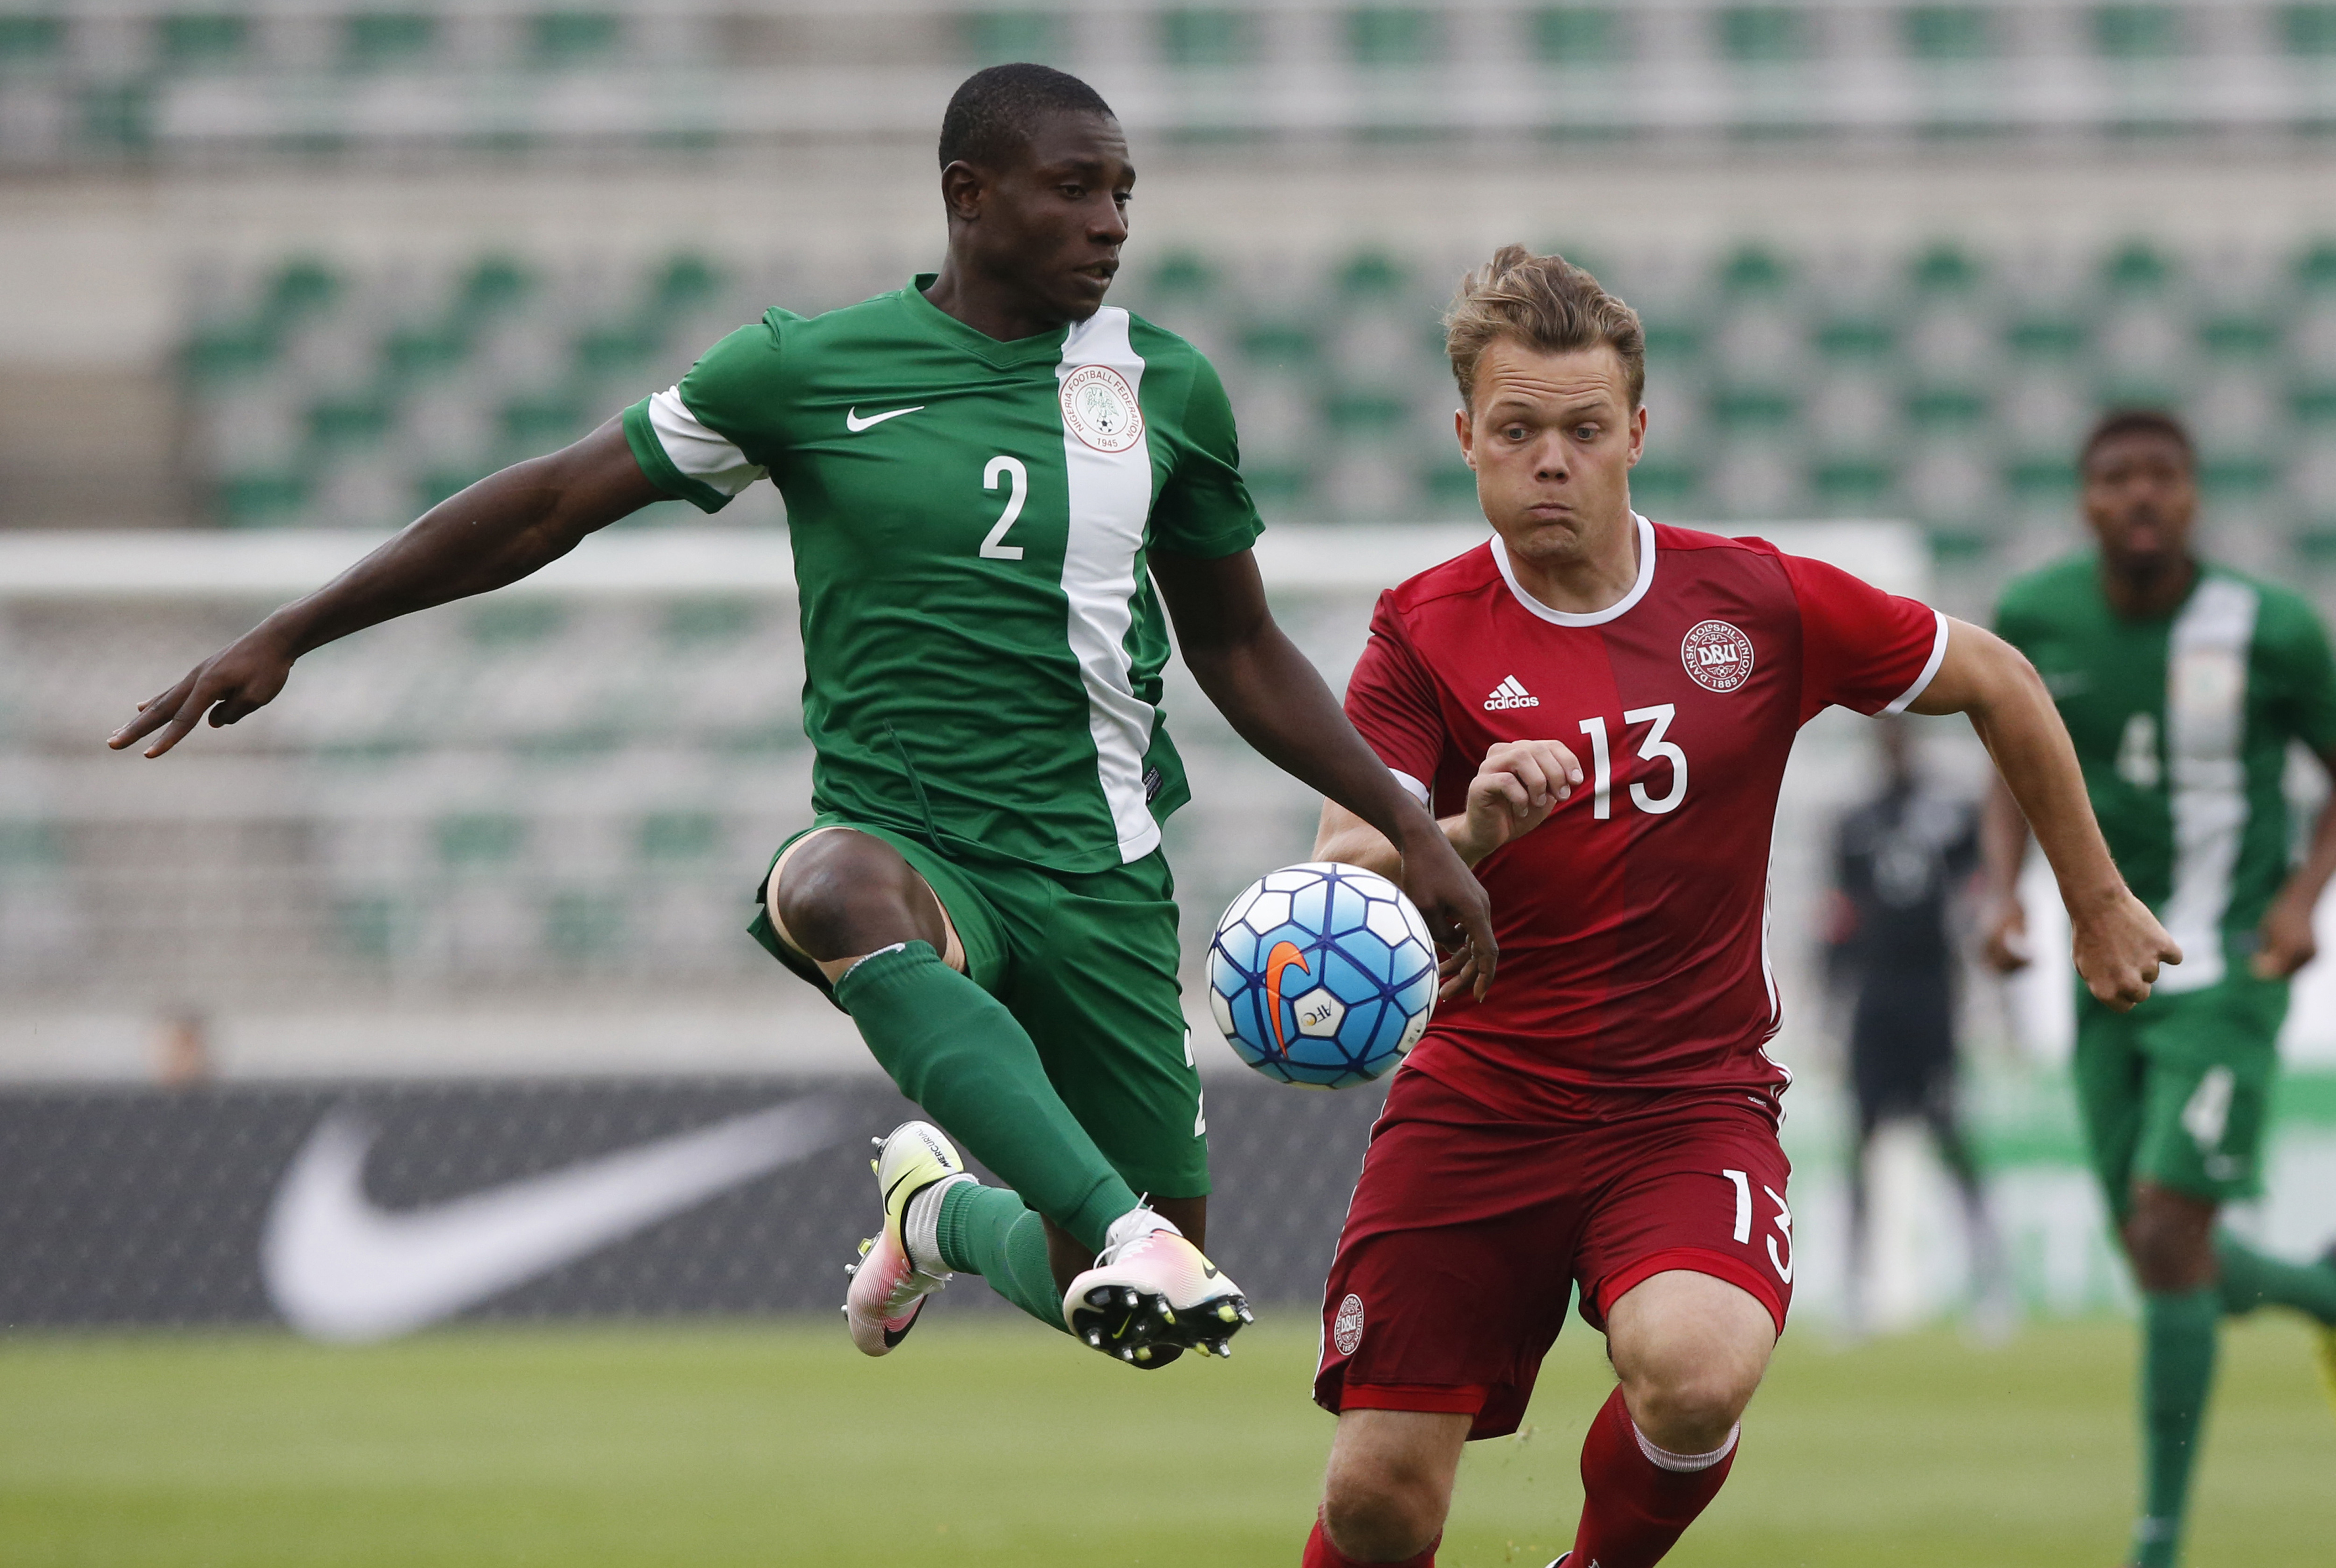 FILE - In this June 4, 2016, file photo, Nigeria's Sincere Muenfuh Seth, left, controls the ball against Denmark's Emil Larsen during a 4 Nations International U-23 soccer tournament at the Goyang Stadium in Goyang, South Korea. African nations have a tra